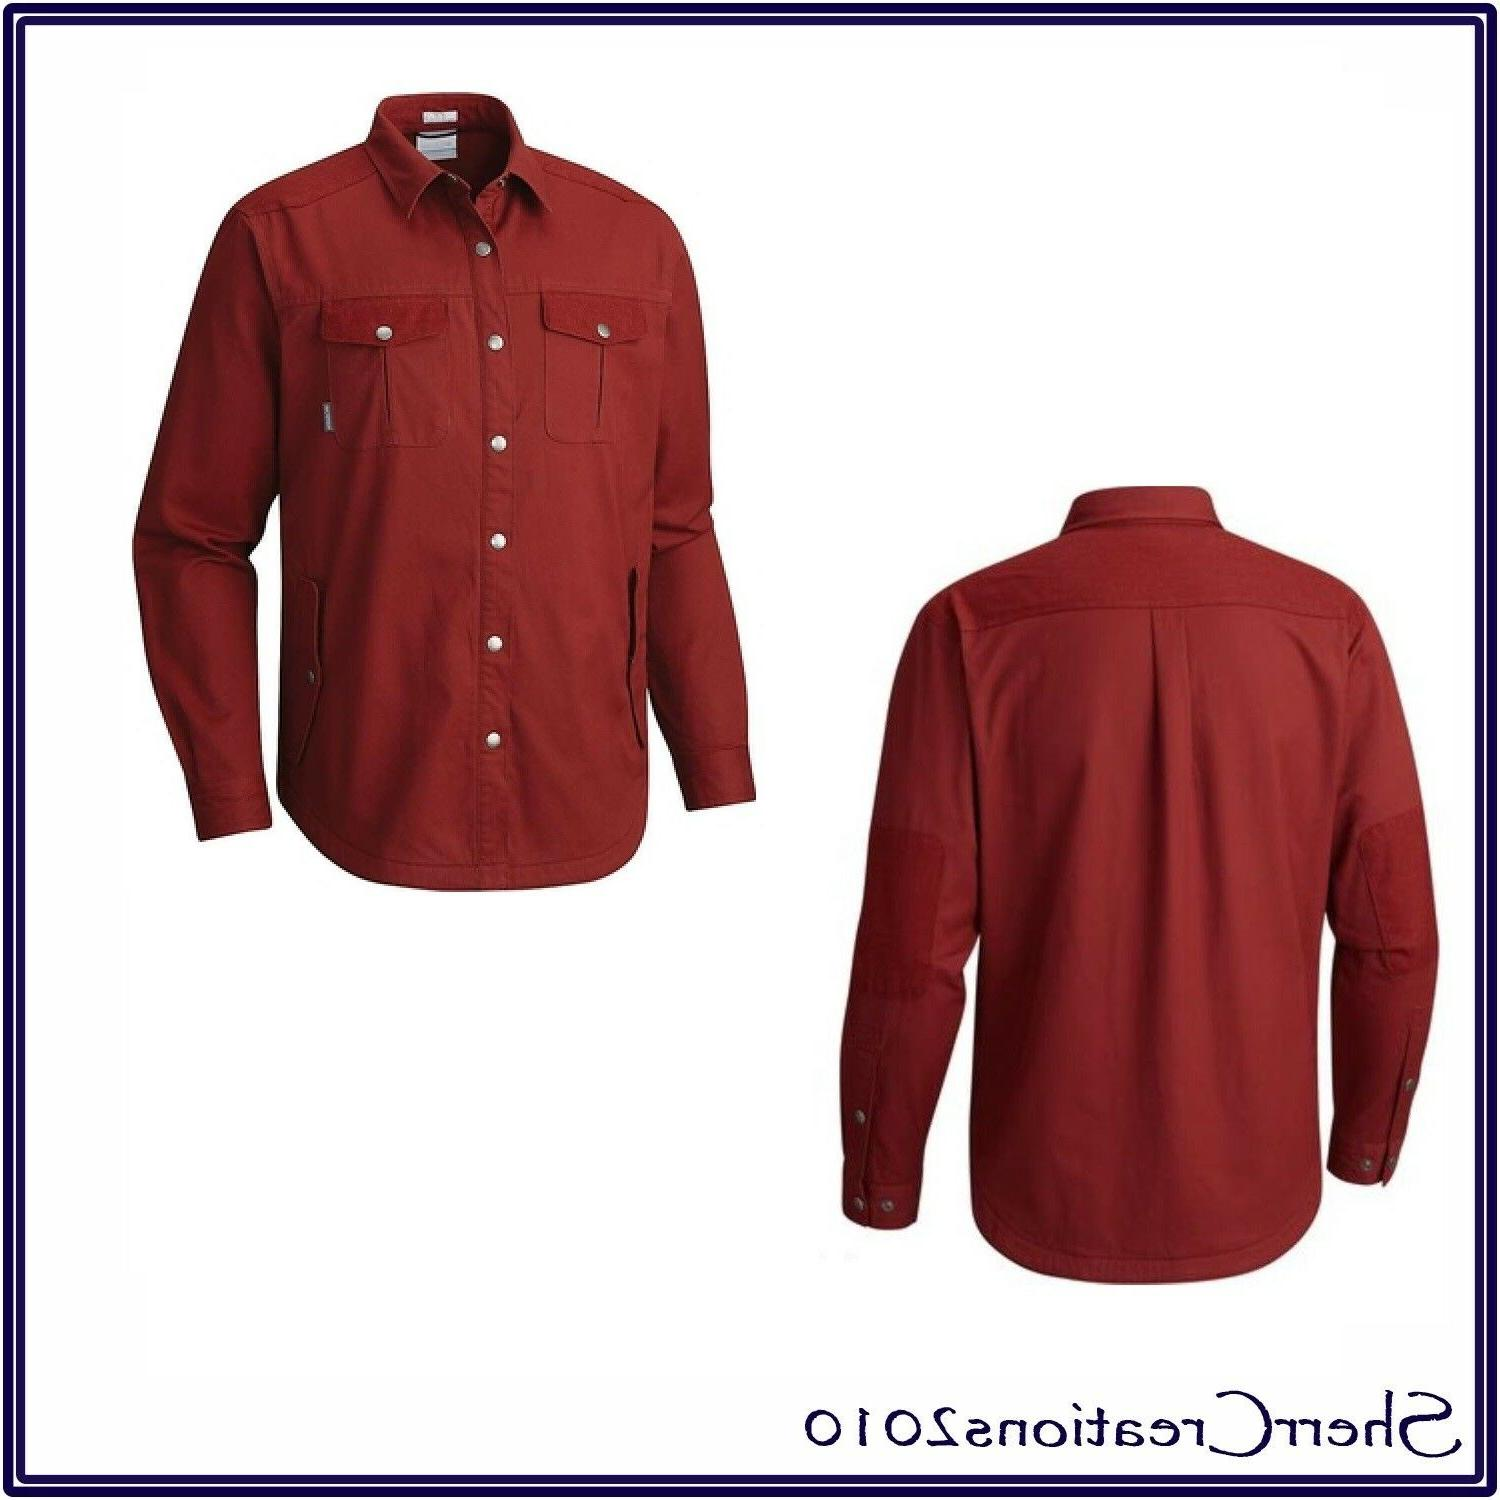 NWT Columbia Men's Hyland Woods 1736131-837 Shirt Jacket MSR